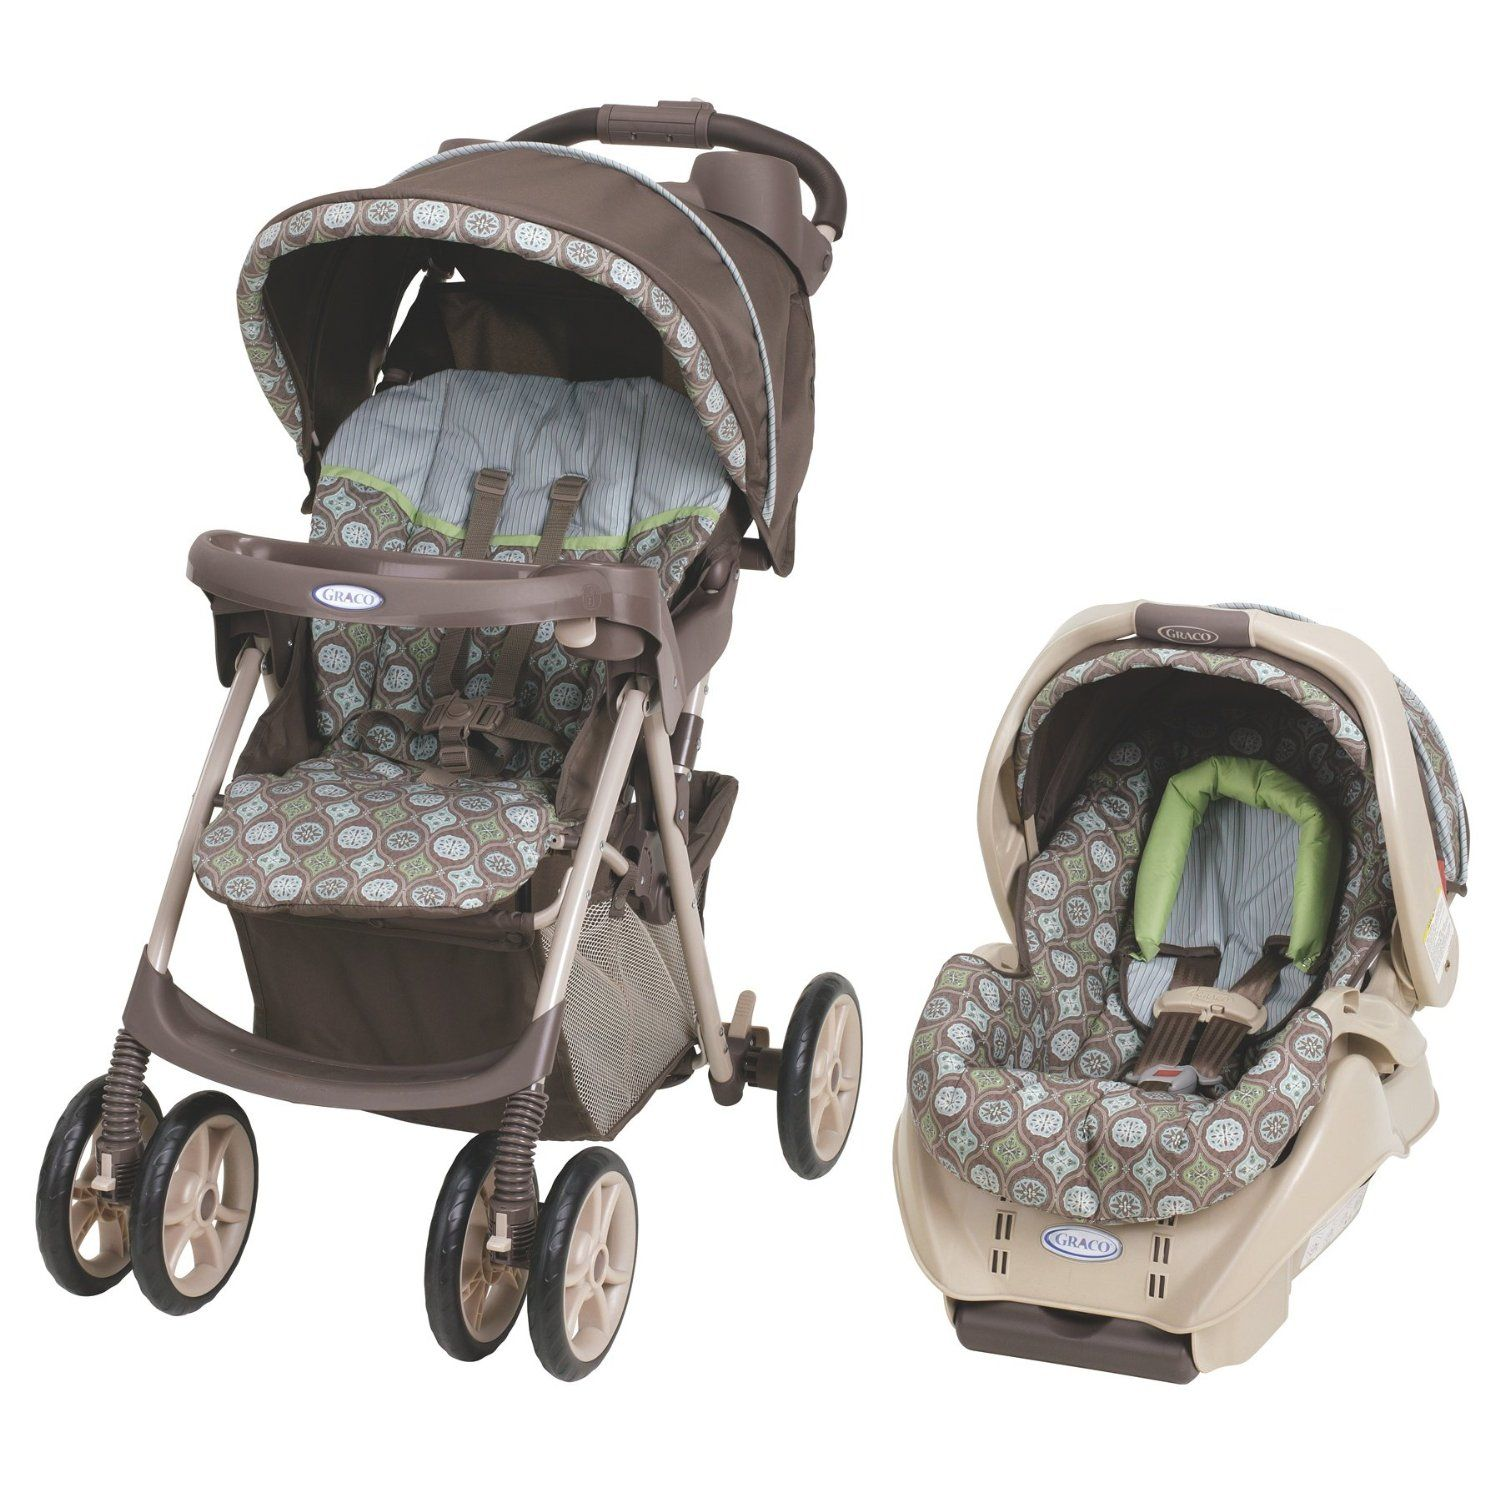 Graco Spree Travel System, Barcelona Bluegrass Stroller